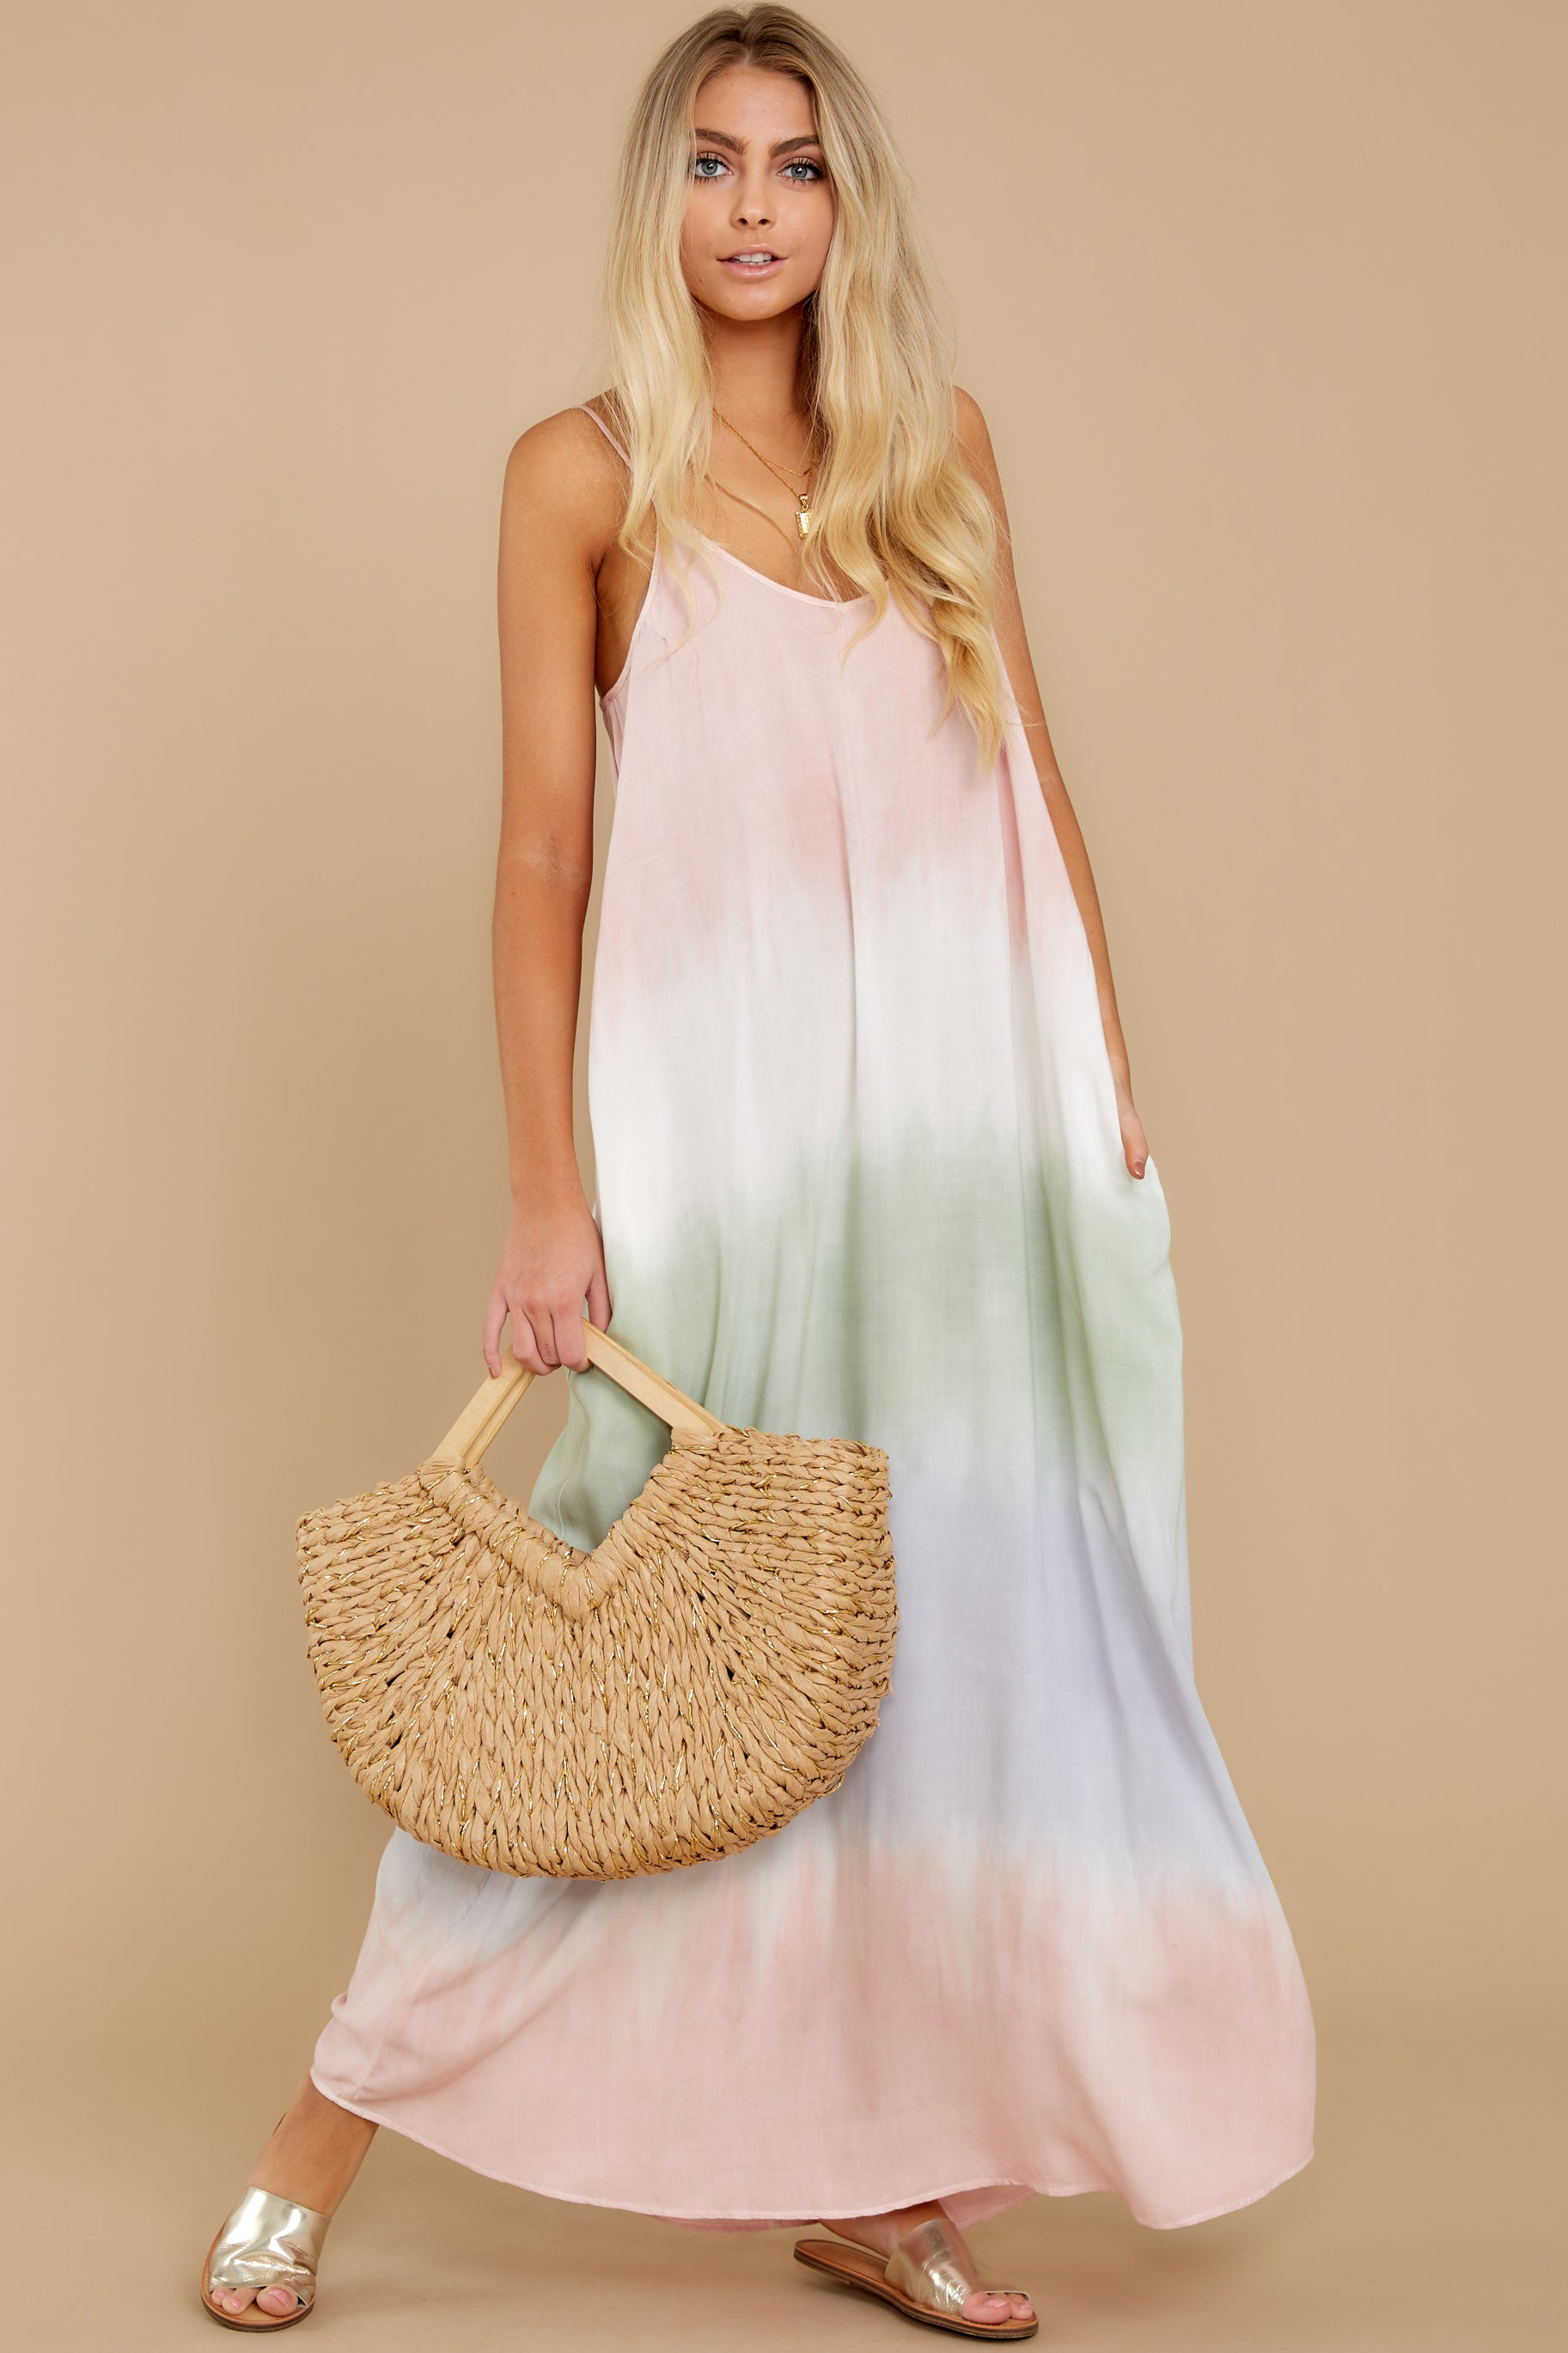 3 All My Love Blush Pink Multi Maxi Dress at reddress.com